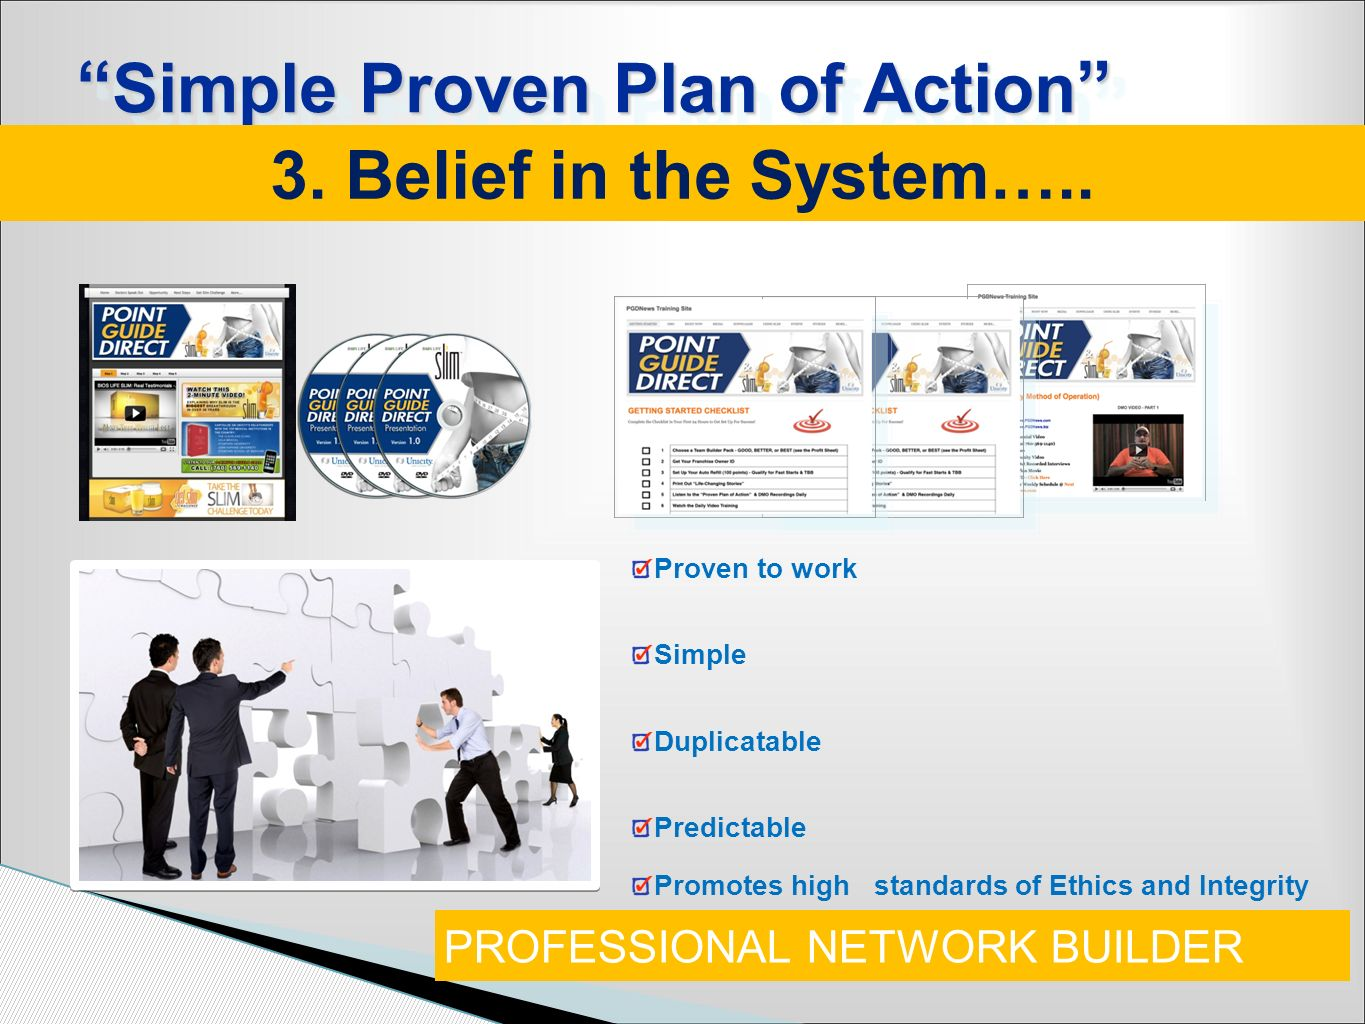 Simple Proven Plan of Action